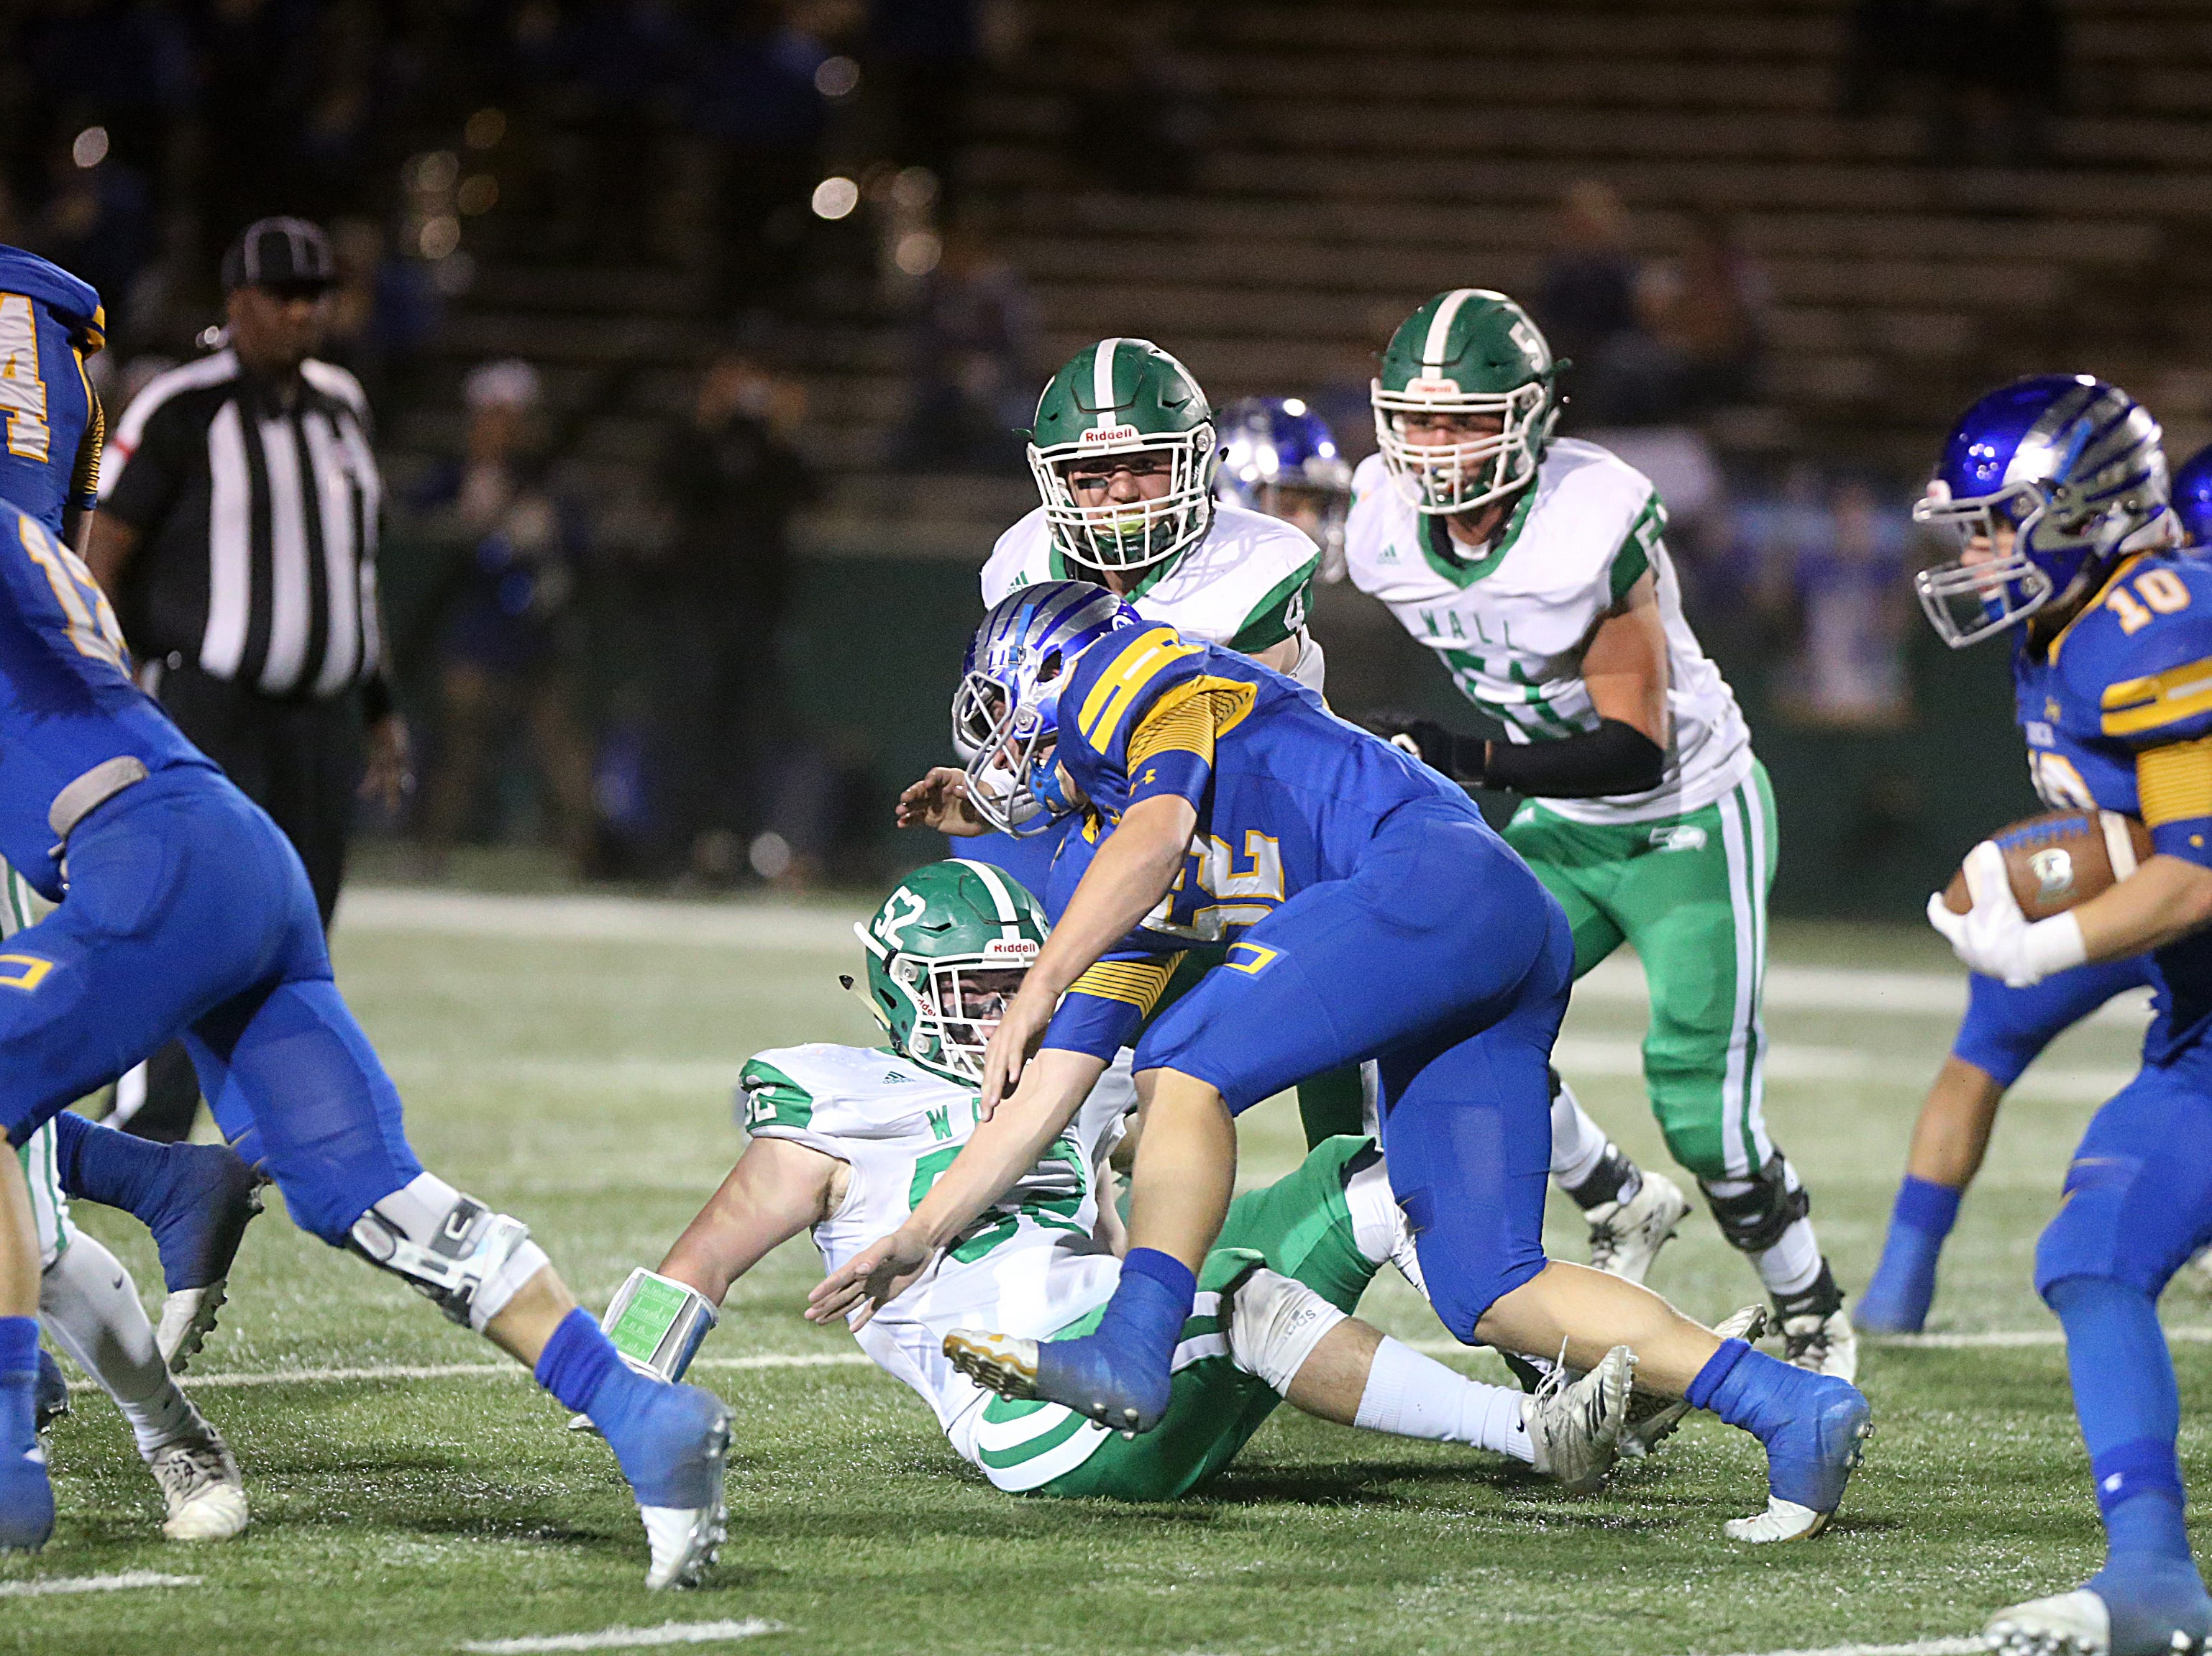 The Wall Hawks and the Brock Eagles collided on the field Friday, Nov. 30, 2018, during their game at Shotwell Stadium in Abilene. Wall lost 13 to 35.